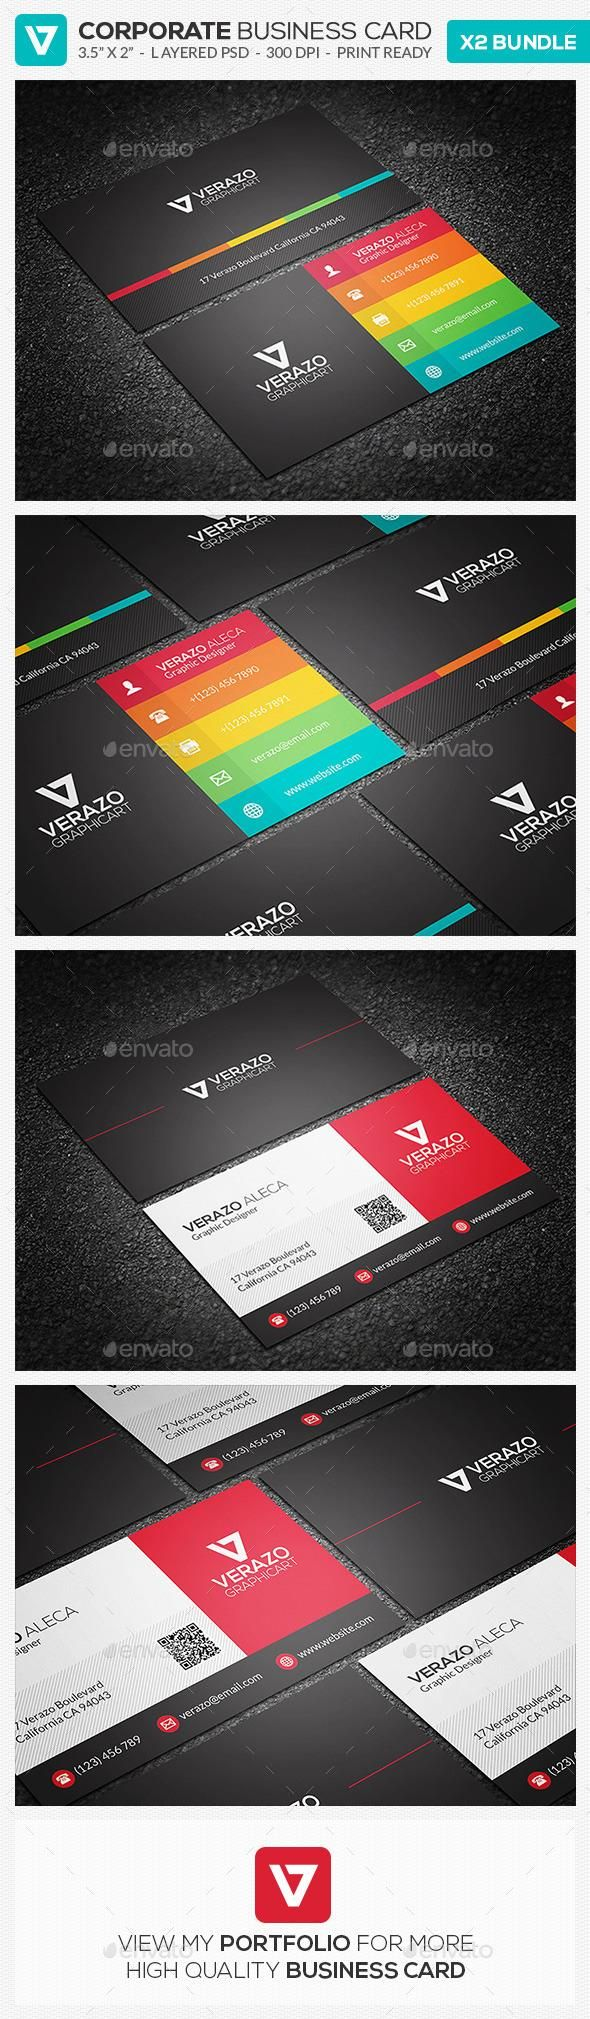 363 best business card design images on pinterest business cards business card bundle 16 by verazo need more high quality business card view my business card templates collection or save money buy business card bundle magicingreecefo Gallery